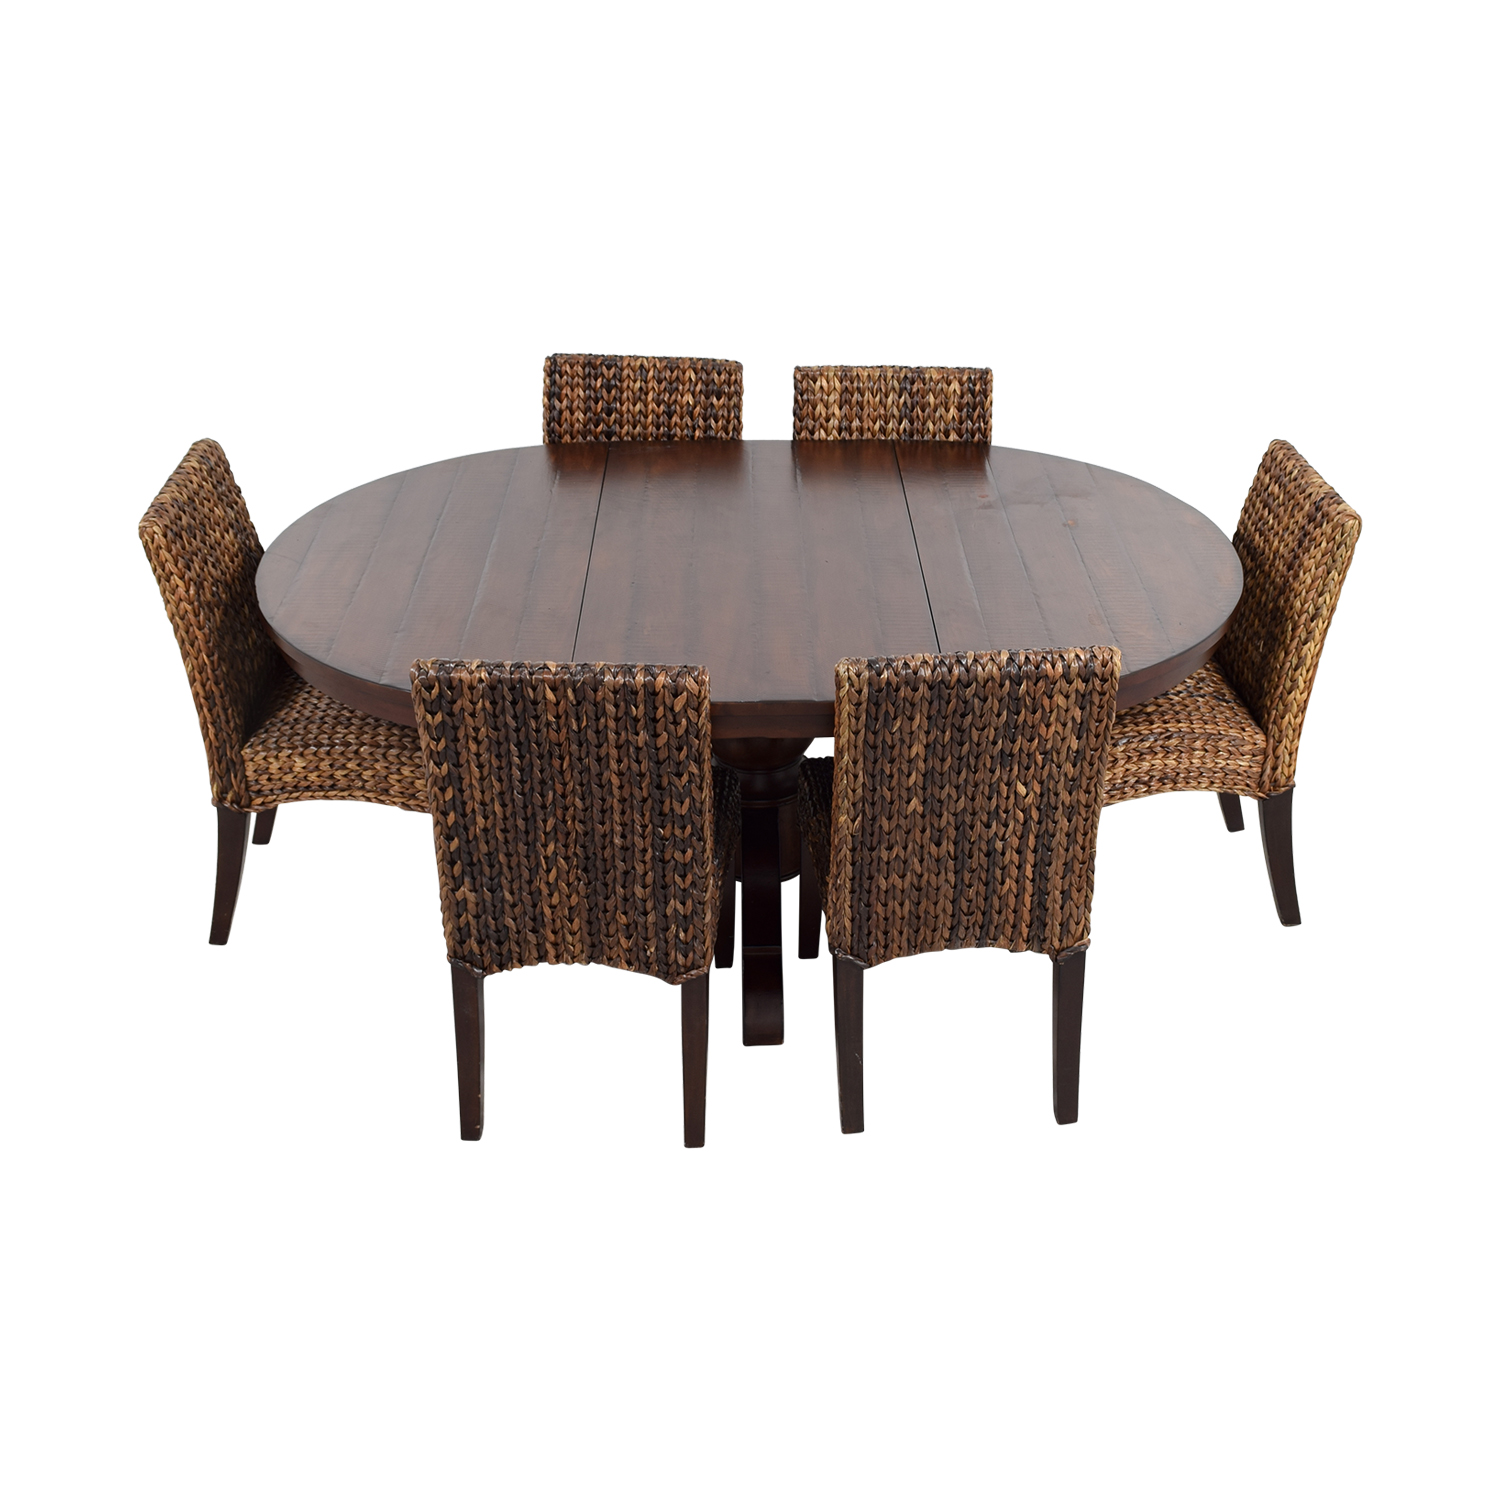 Pottery Barn Dining Set: Dining Sets: Used Dining Sets For Sale